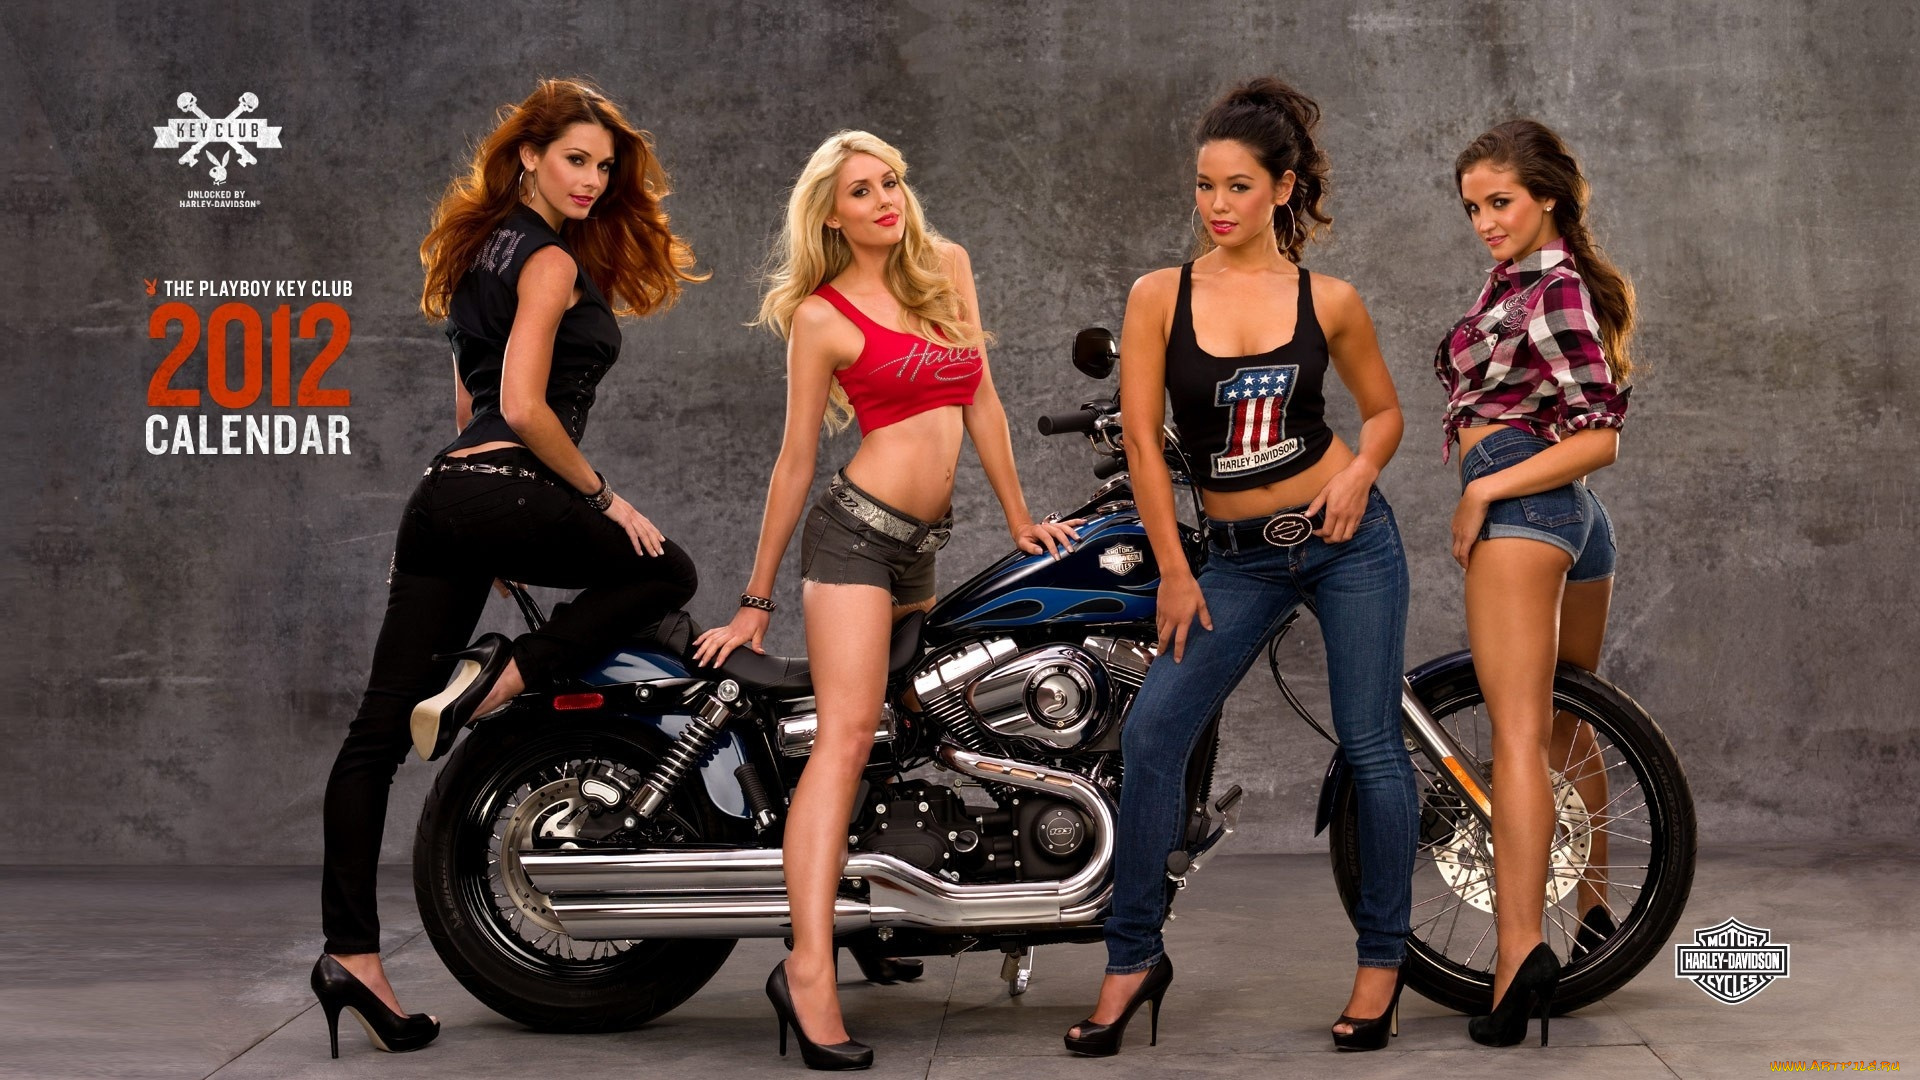 harley-davidson-bikini-girls-calendars-morgan-blowjob-tree